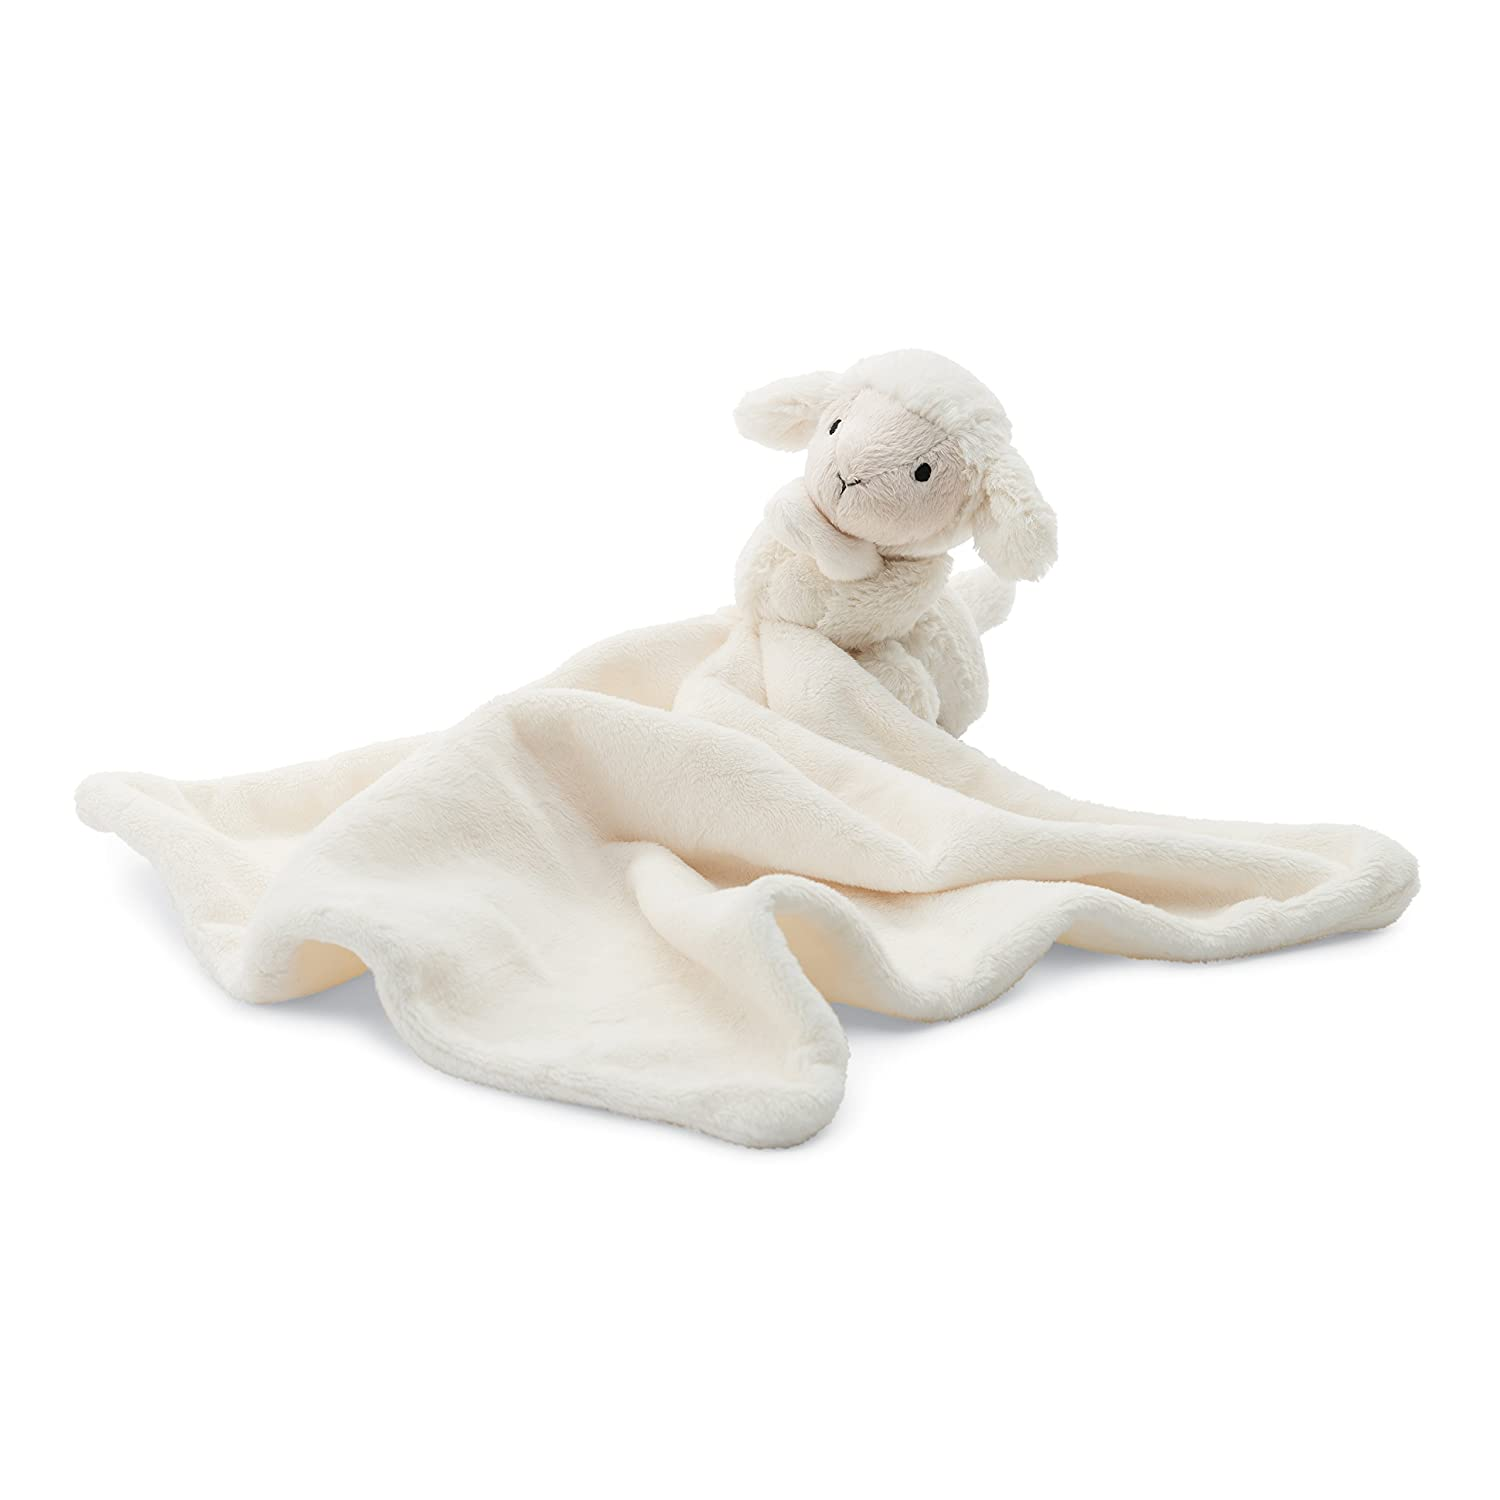 bb6d4bc9be686 Jellycat Bashful Lamb Baby Security Blanket